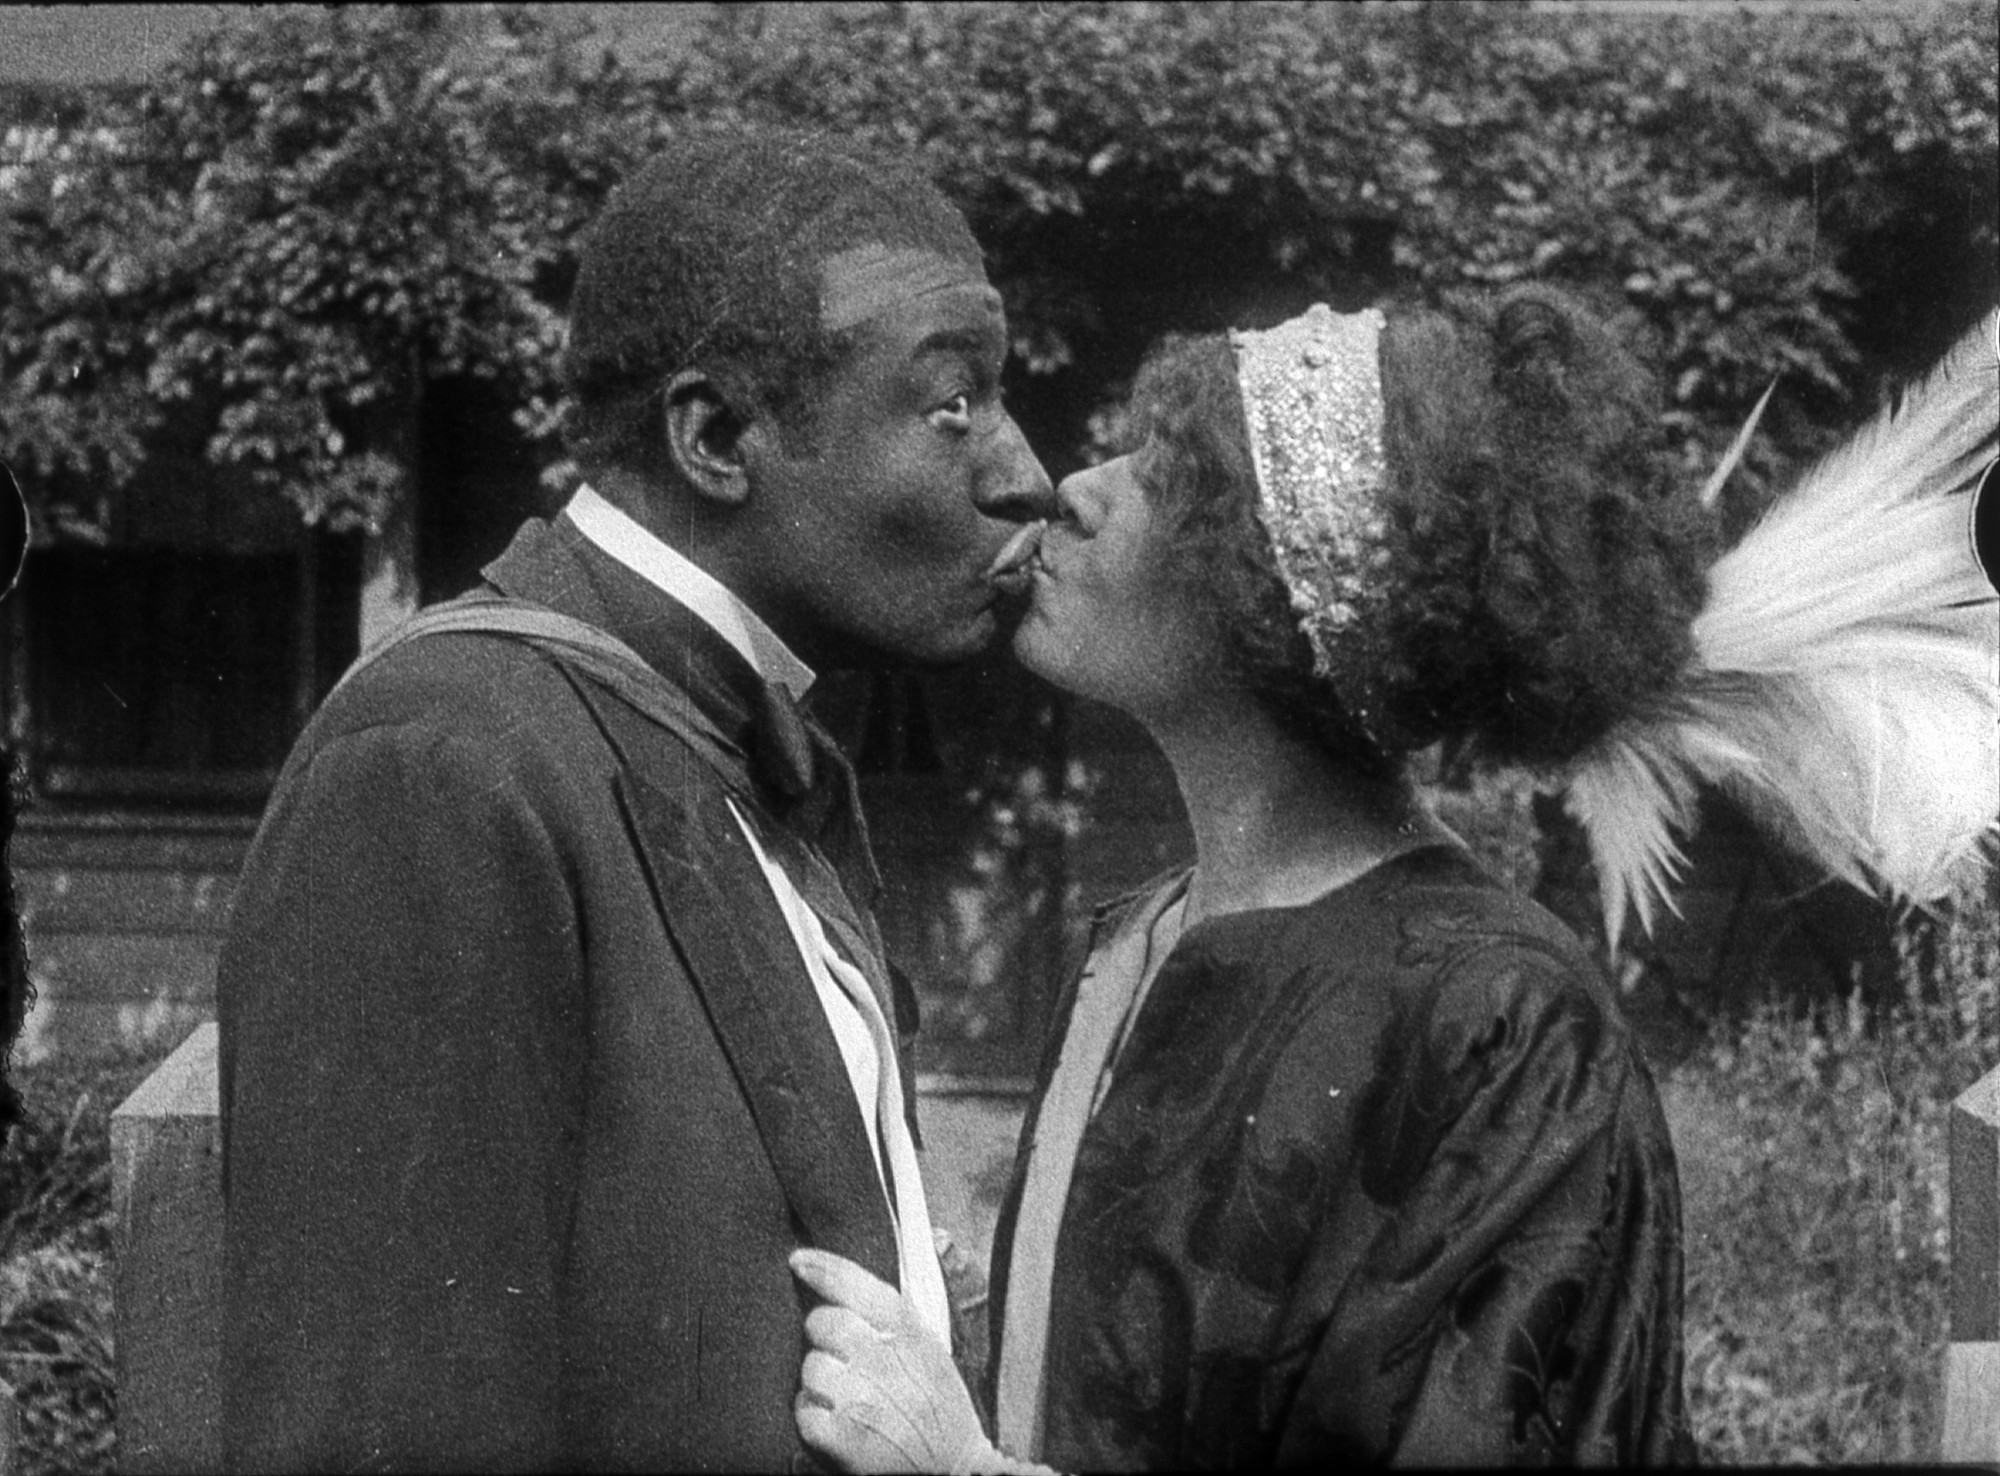 Lime Kiln Club Field Day. 1913/2014. USA. Directed by T. Hayes Hunter, Edwin Middleton. The Museum of Modern Art Film Study Center Special Collections